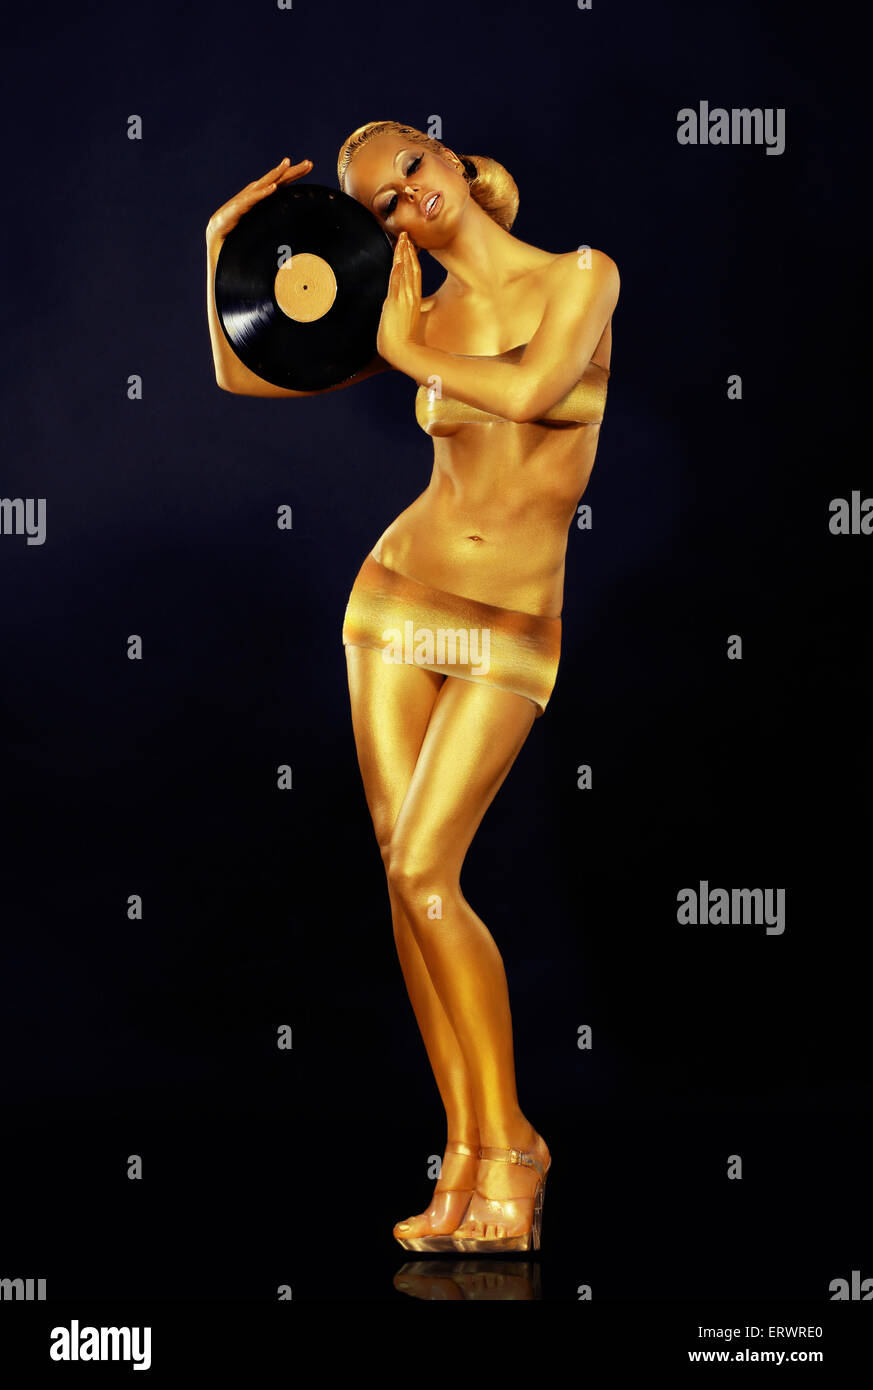 Woman Painted Gold With Vinyl Record - Stock Image